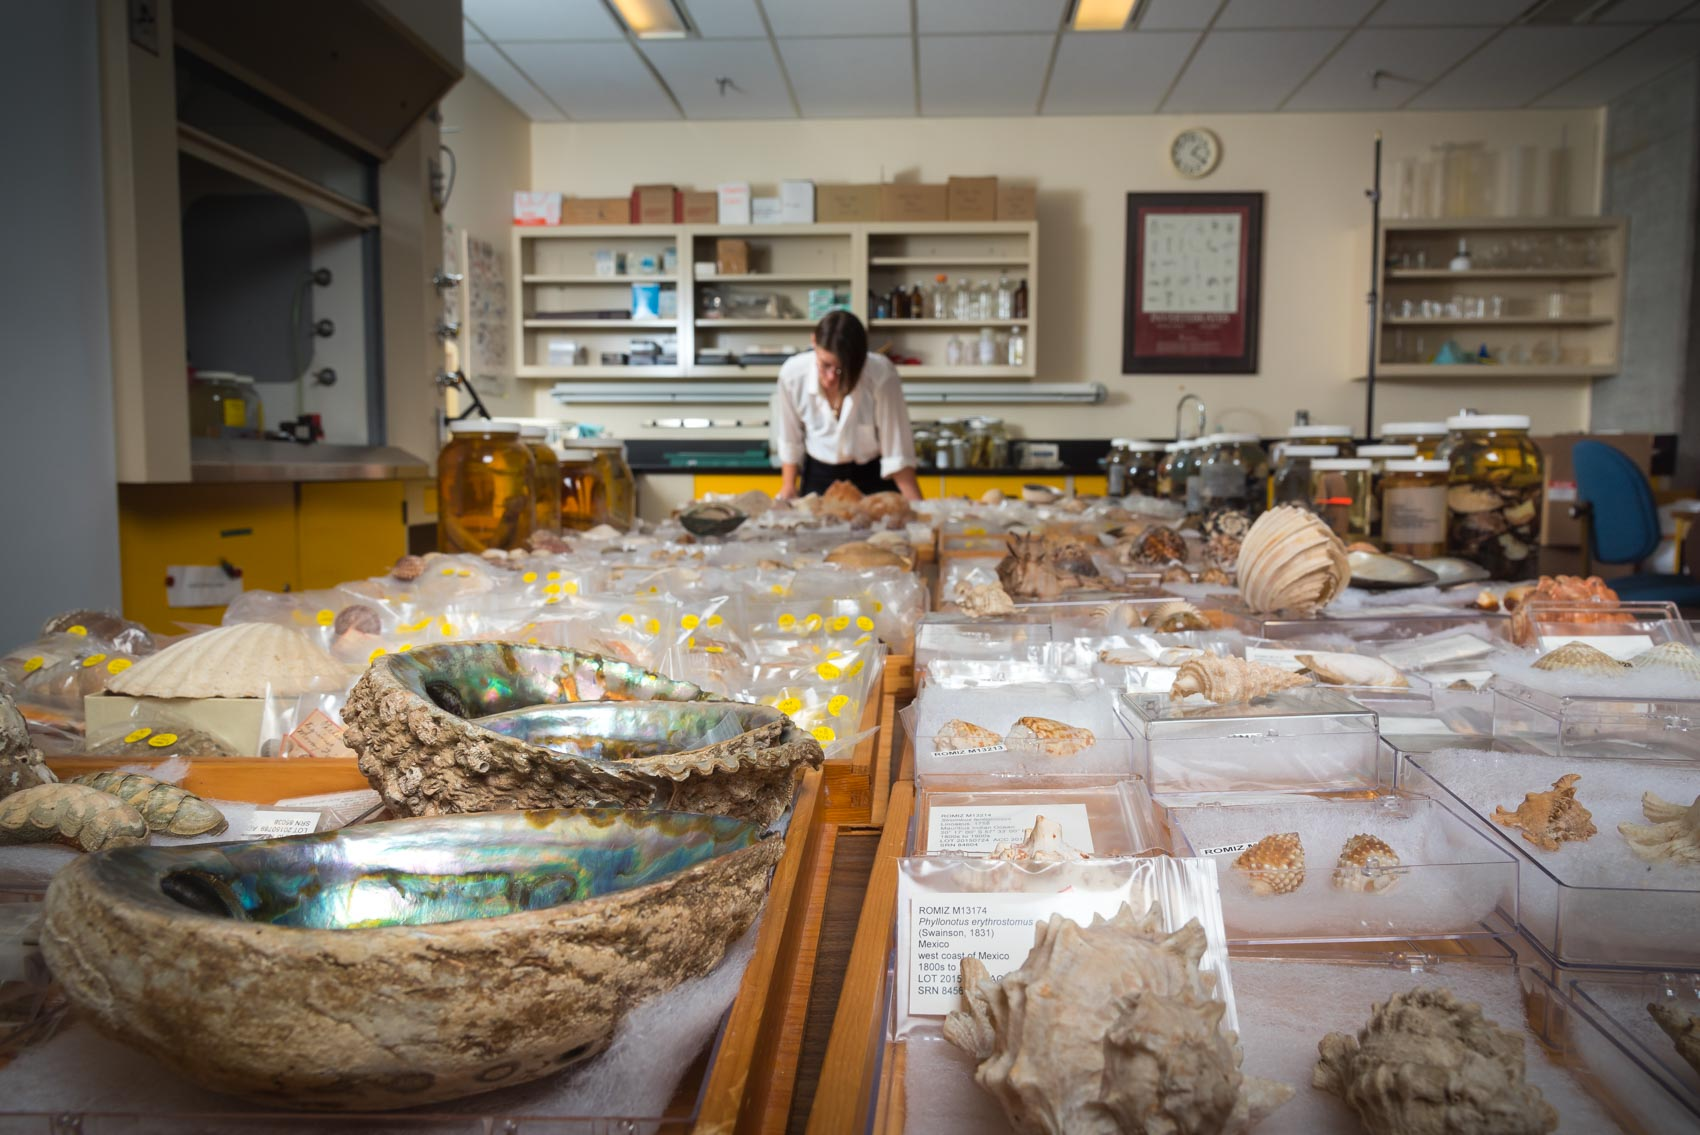 A MSc student looking through the molluscs collection at the Royal Ontario Museum